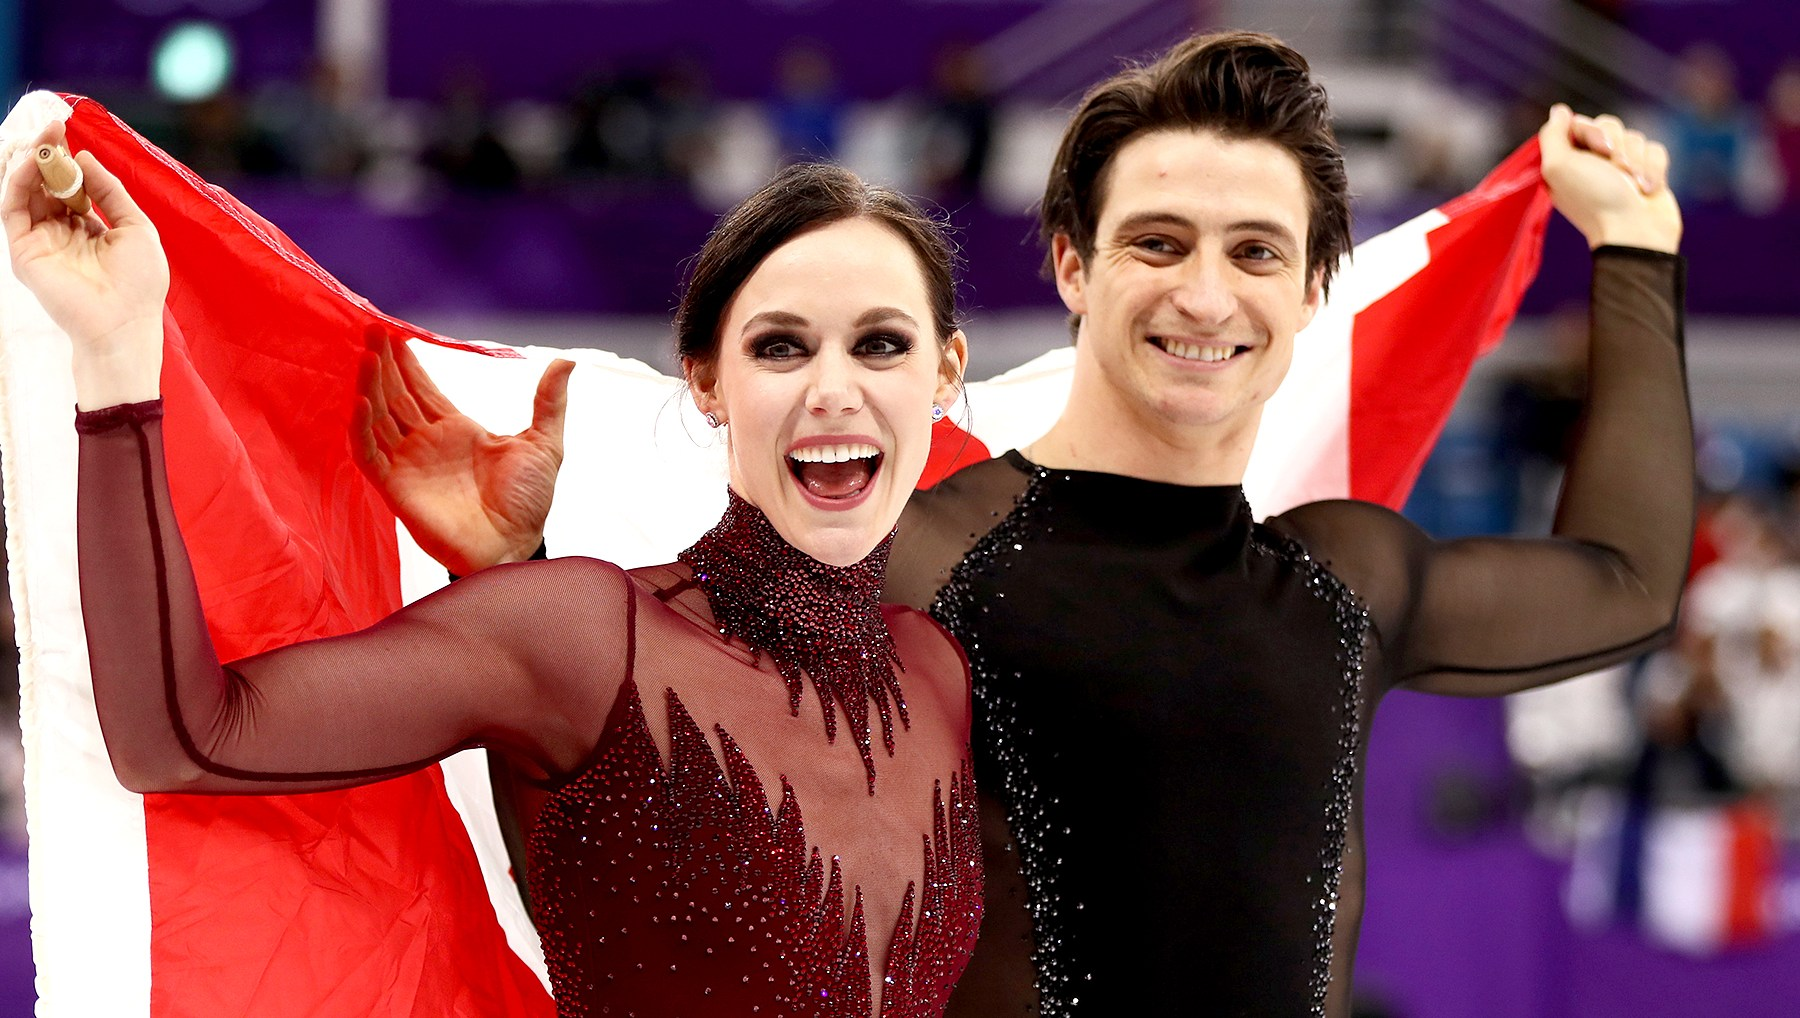 Tessa-Virtue-and-Scott-Moir